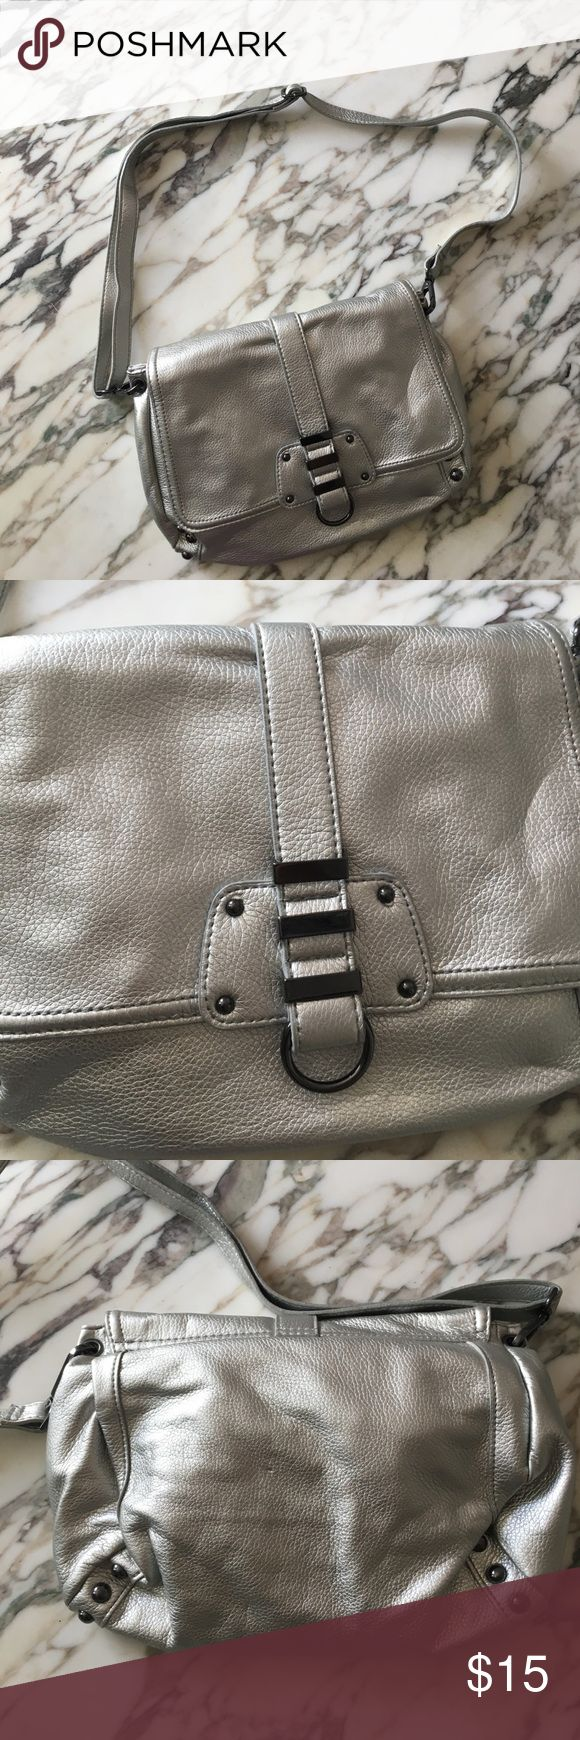 NWOT H&M purse Silver H&M purse. Never worn or used. Make me an offer! Bundle and save! H&M Bags Shoulder Bags